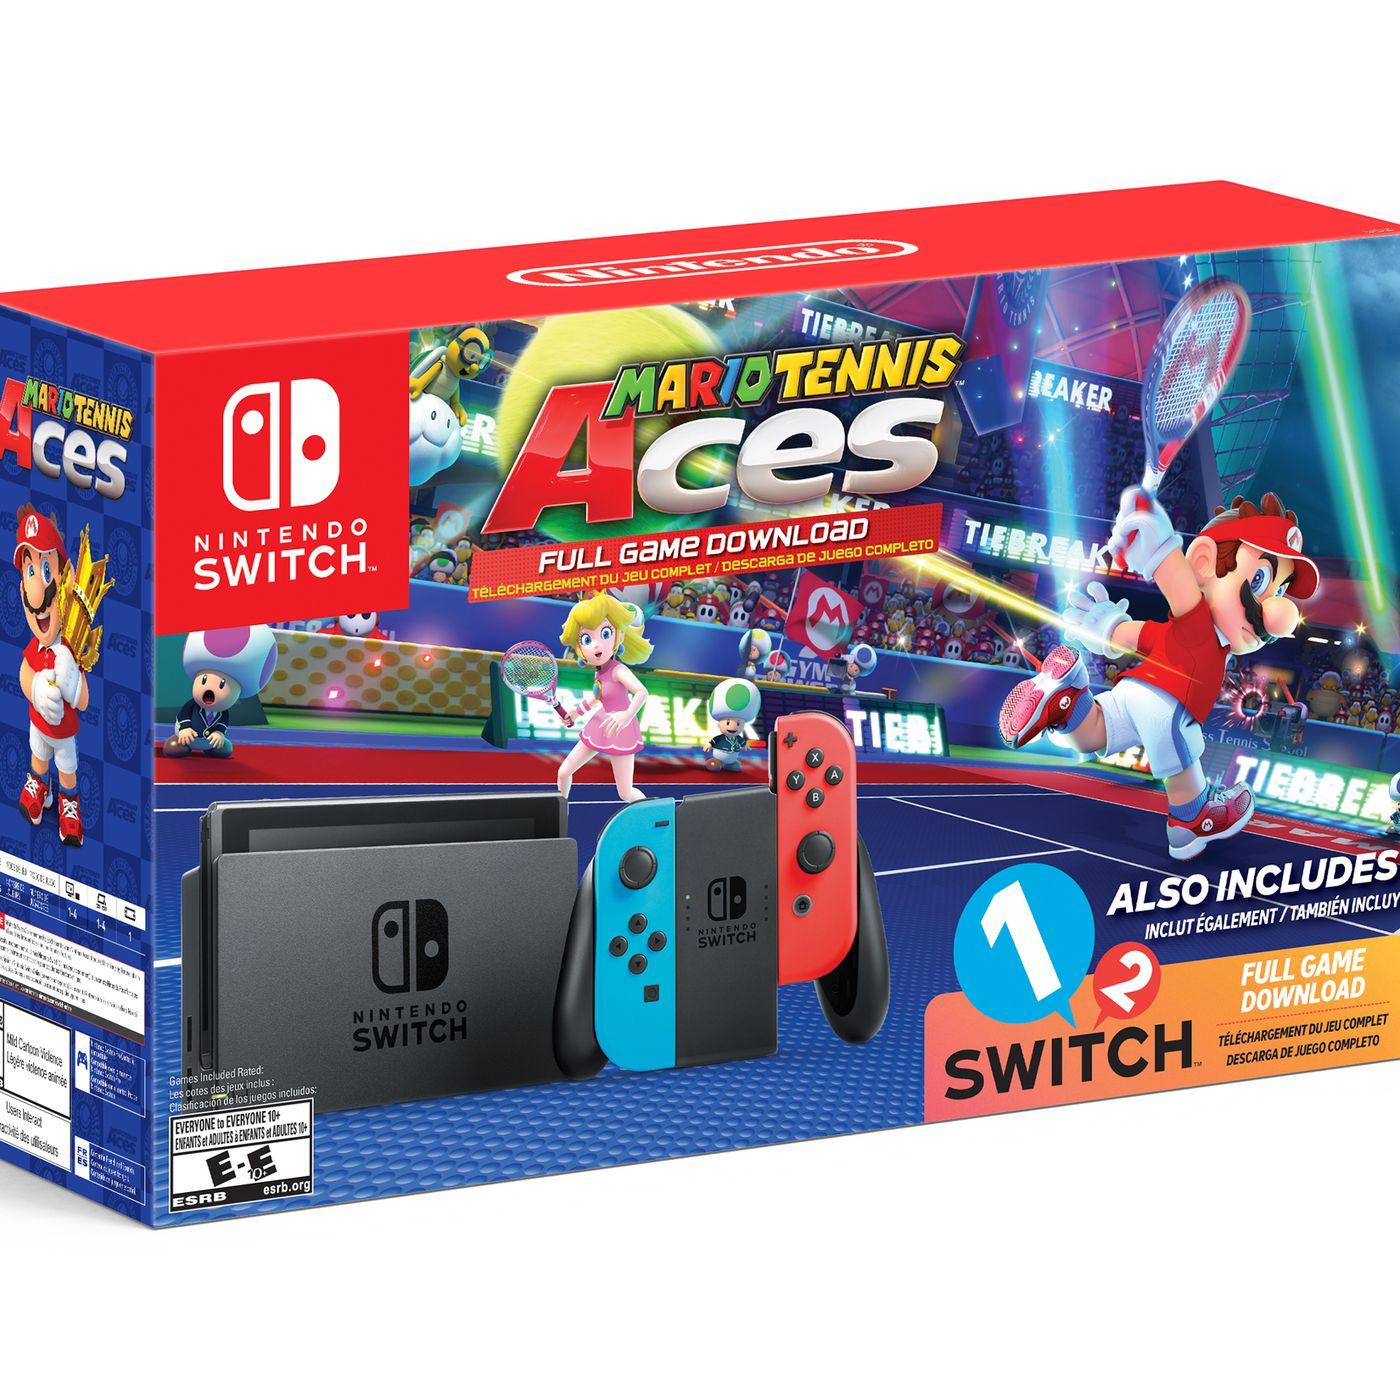 Walmart S Nintendo Switch Bundle Includes Mario Tennis Aces 1 2